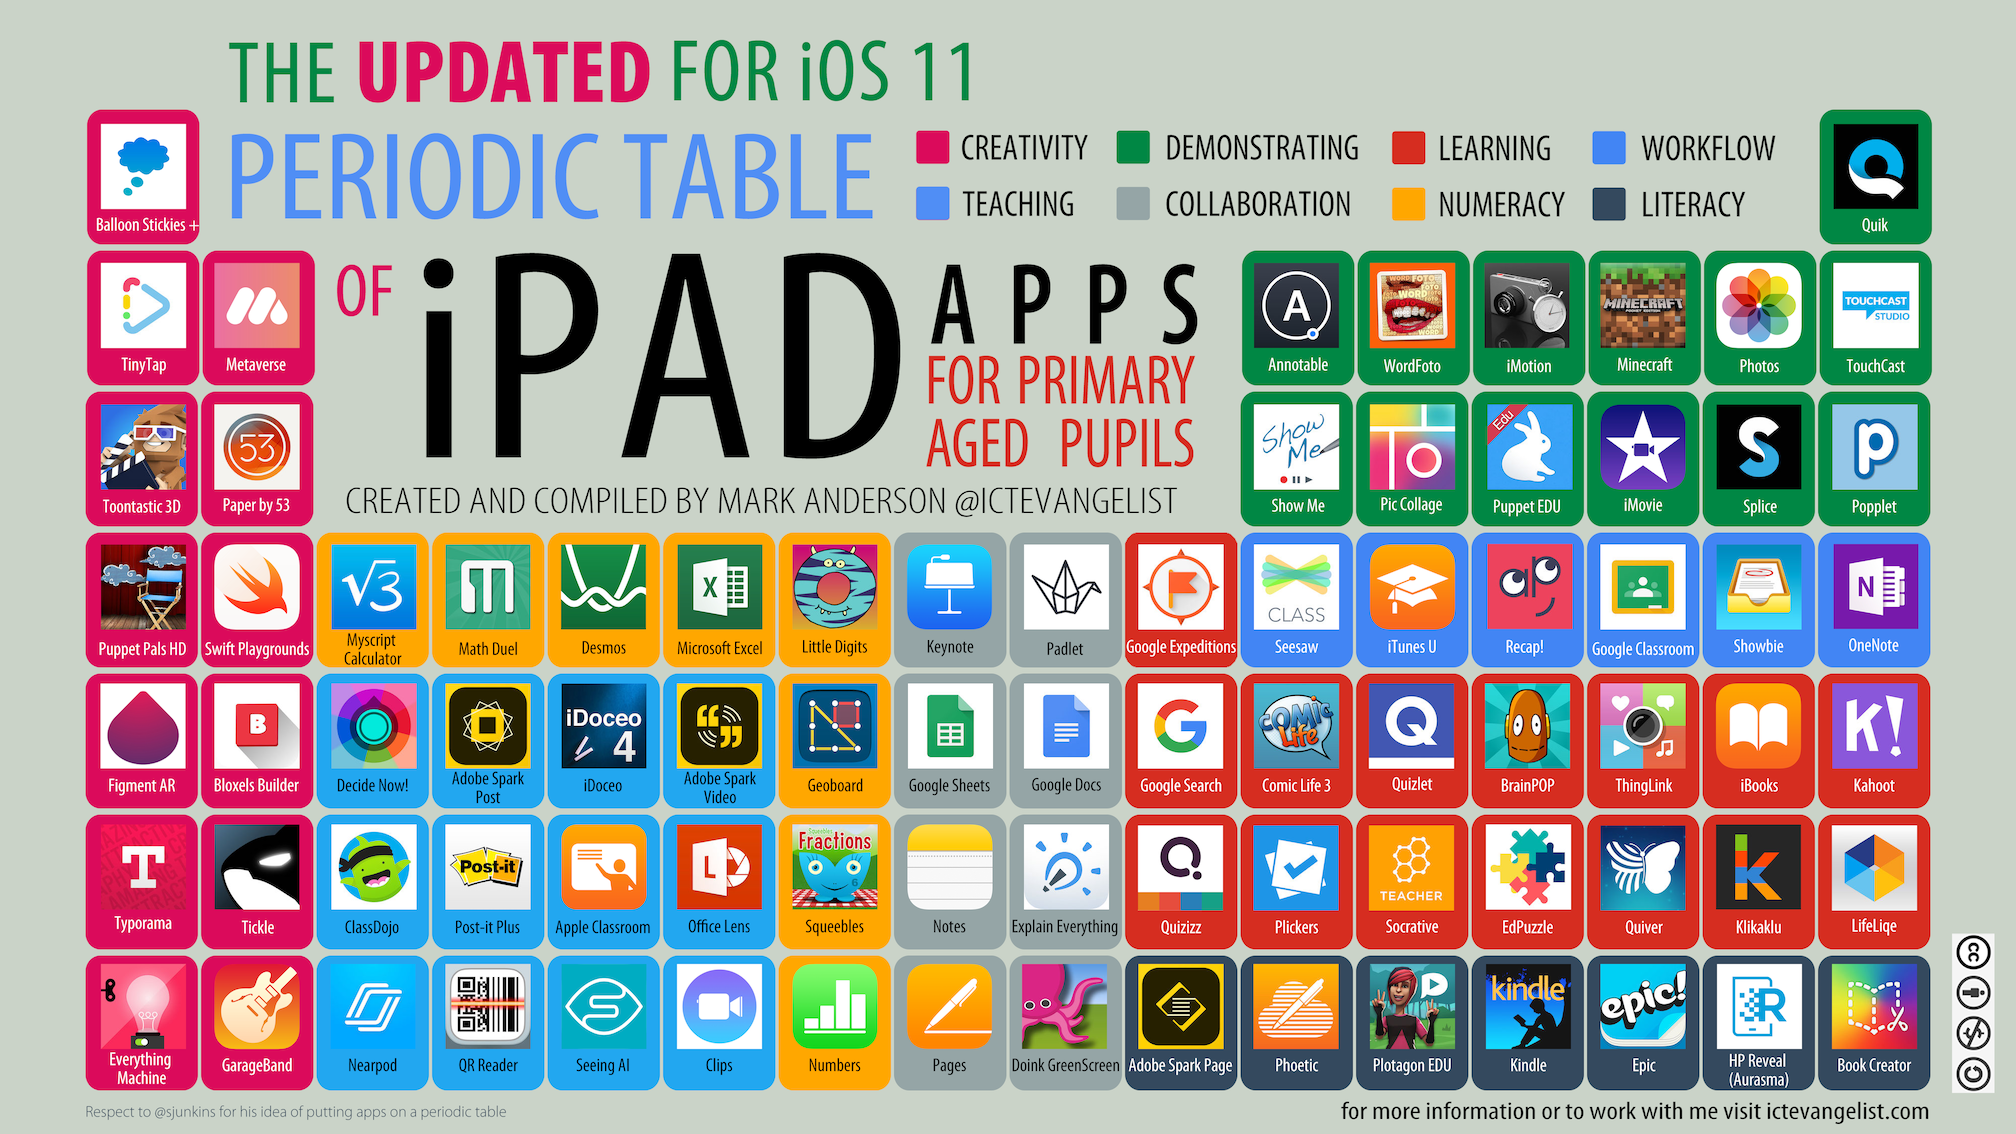 New And Updated Periodic Table Of Ipad Apps For Primary Aged Pupils For Ios 11 Ictevangelist